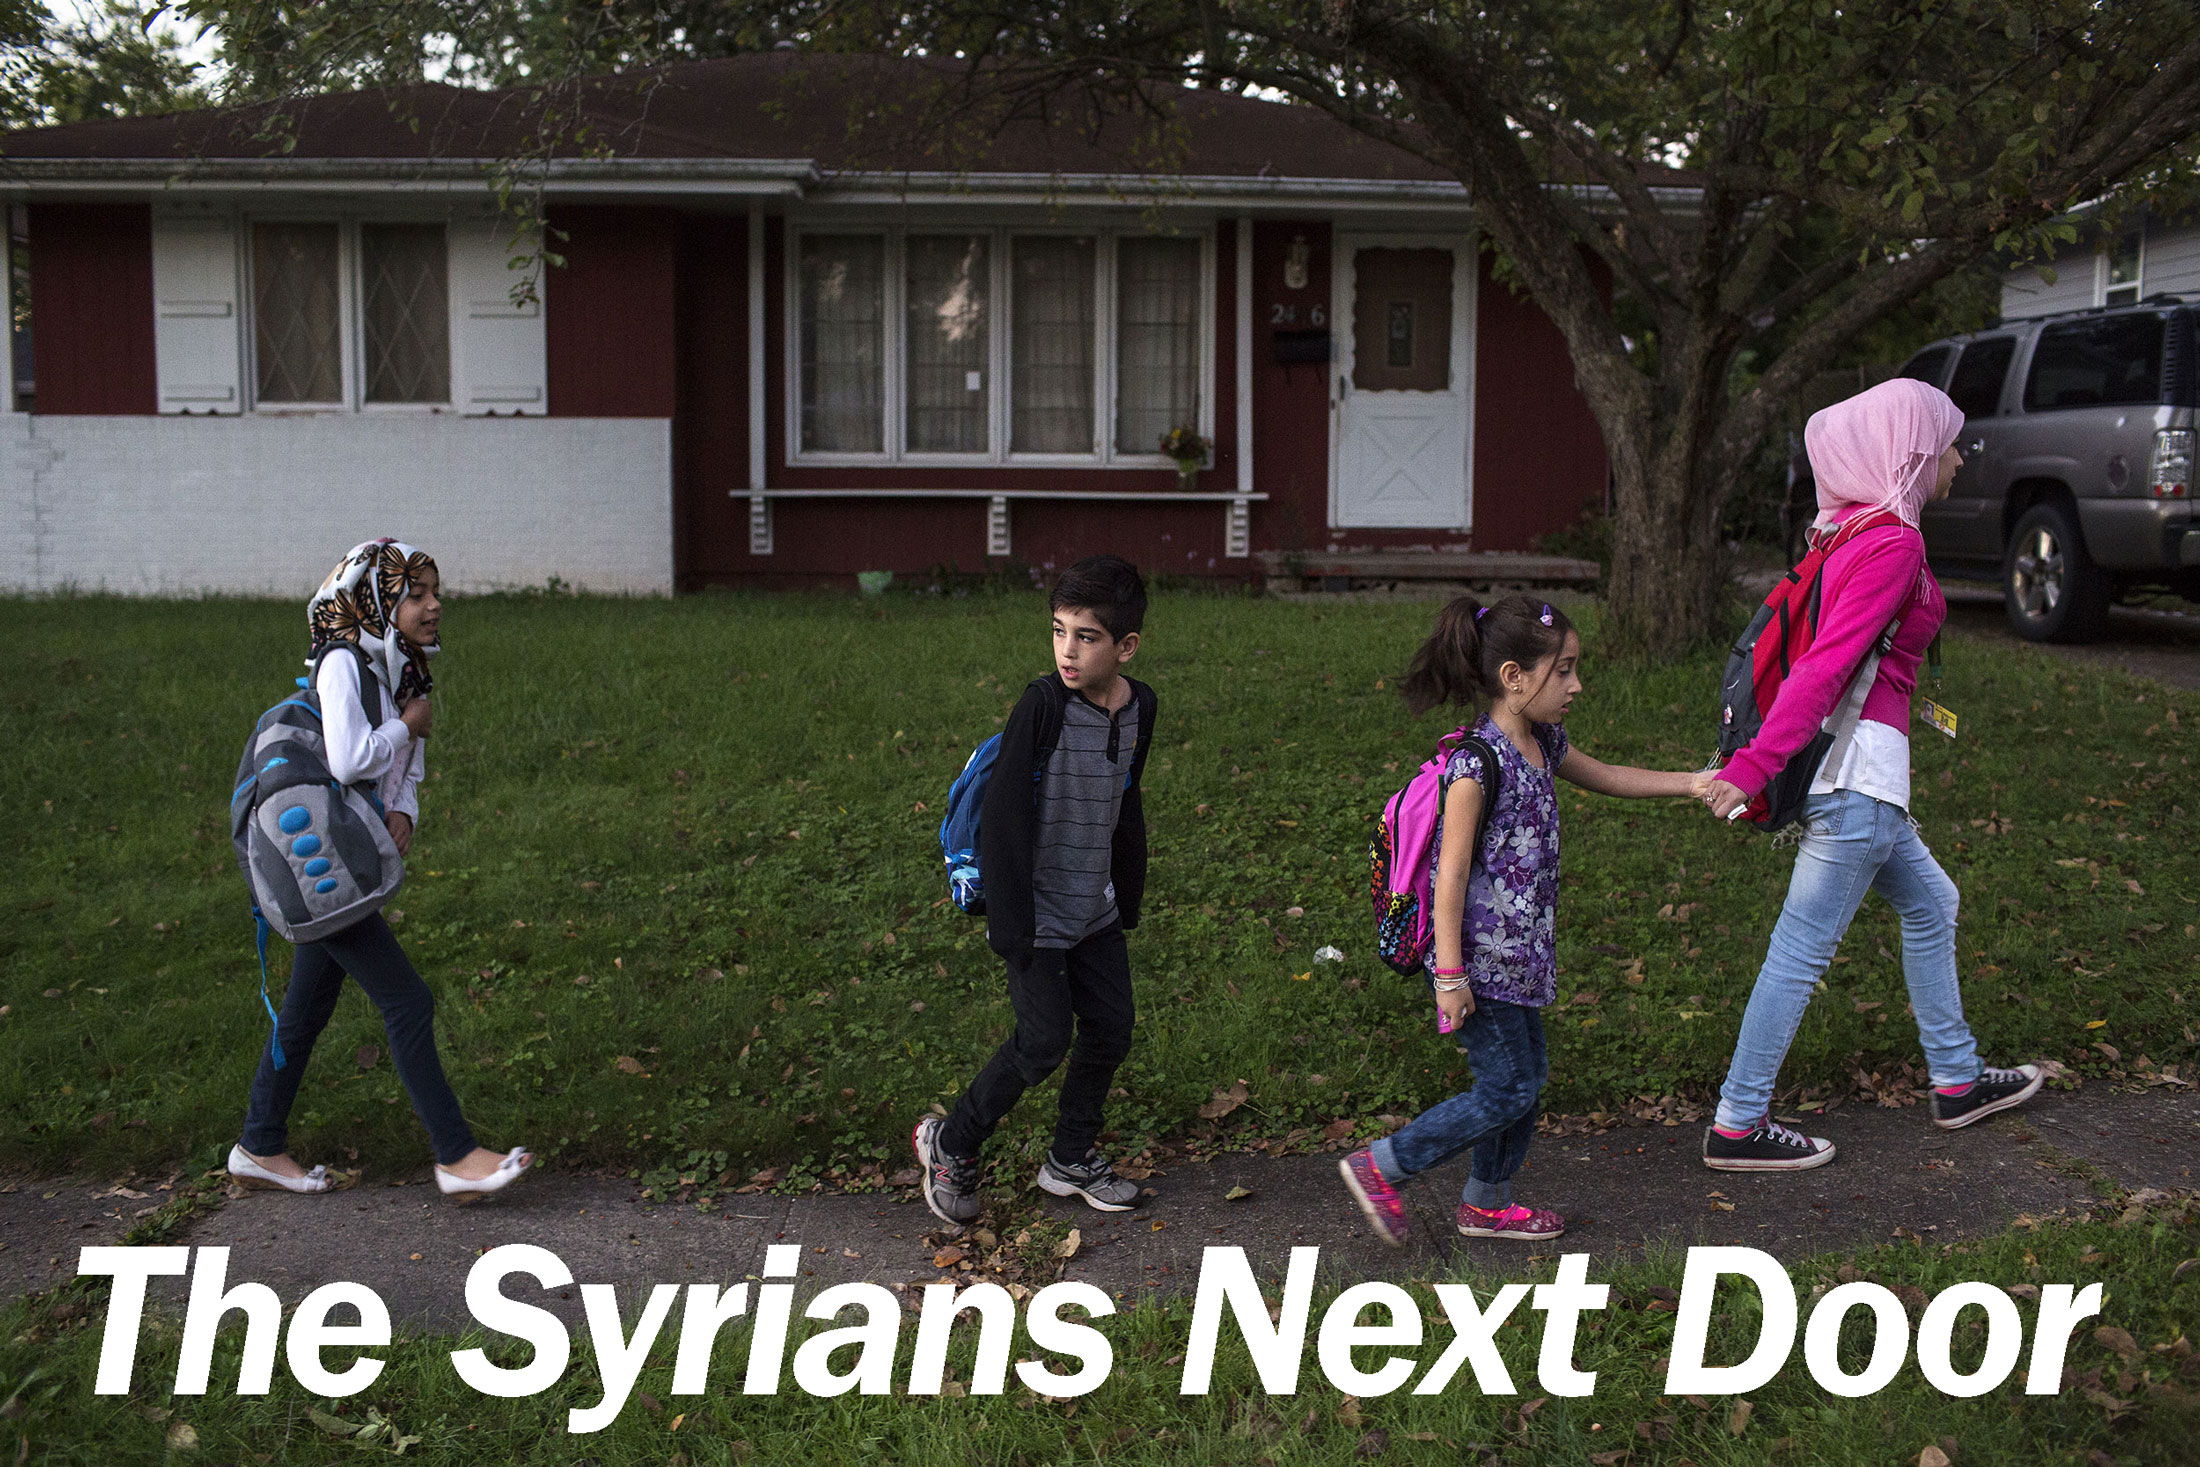 Sedra walks her brother Mutaz, sister Hala (with pink backpack) and a friend to their school-bus stop in the family's neighborhood in Des Moines.